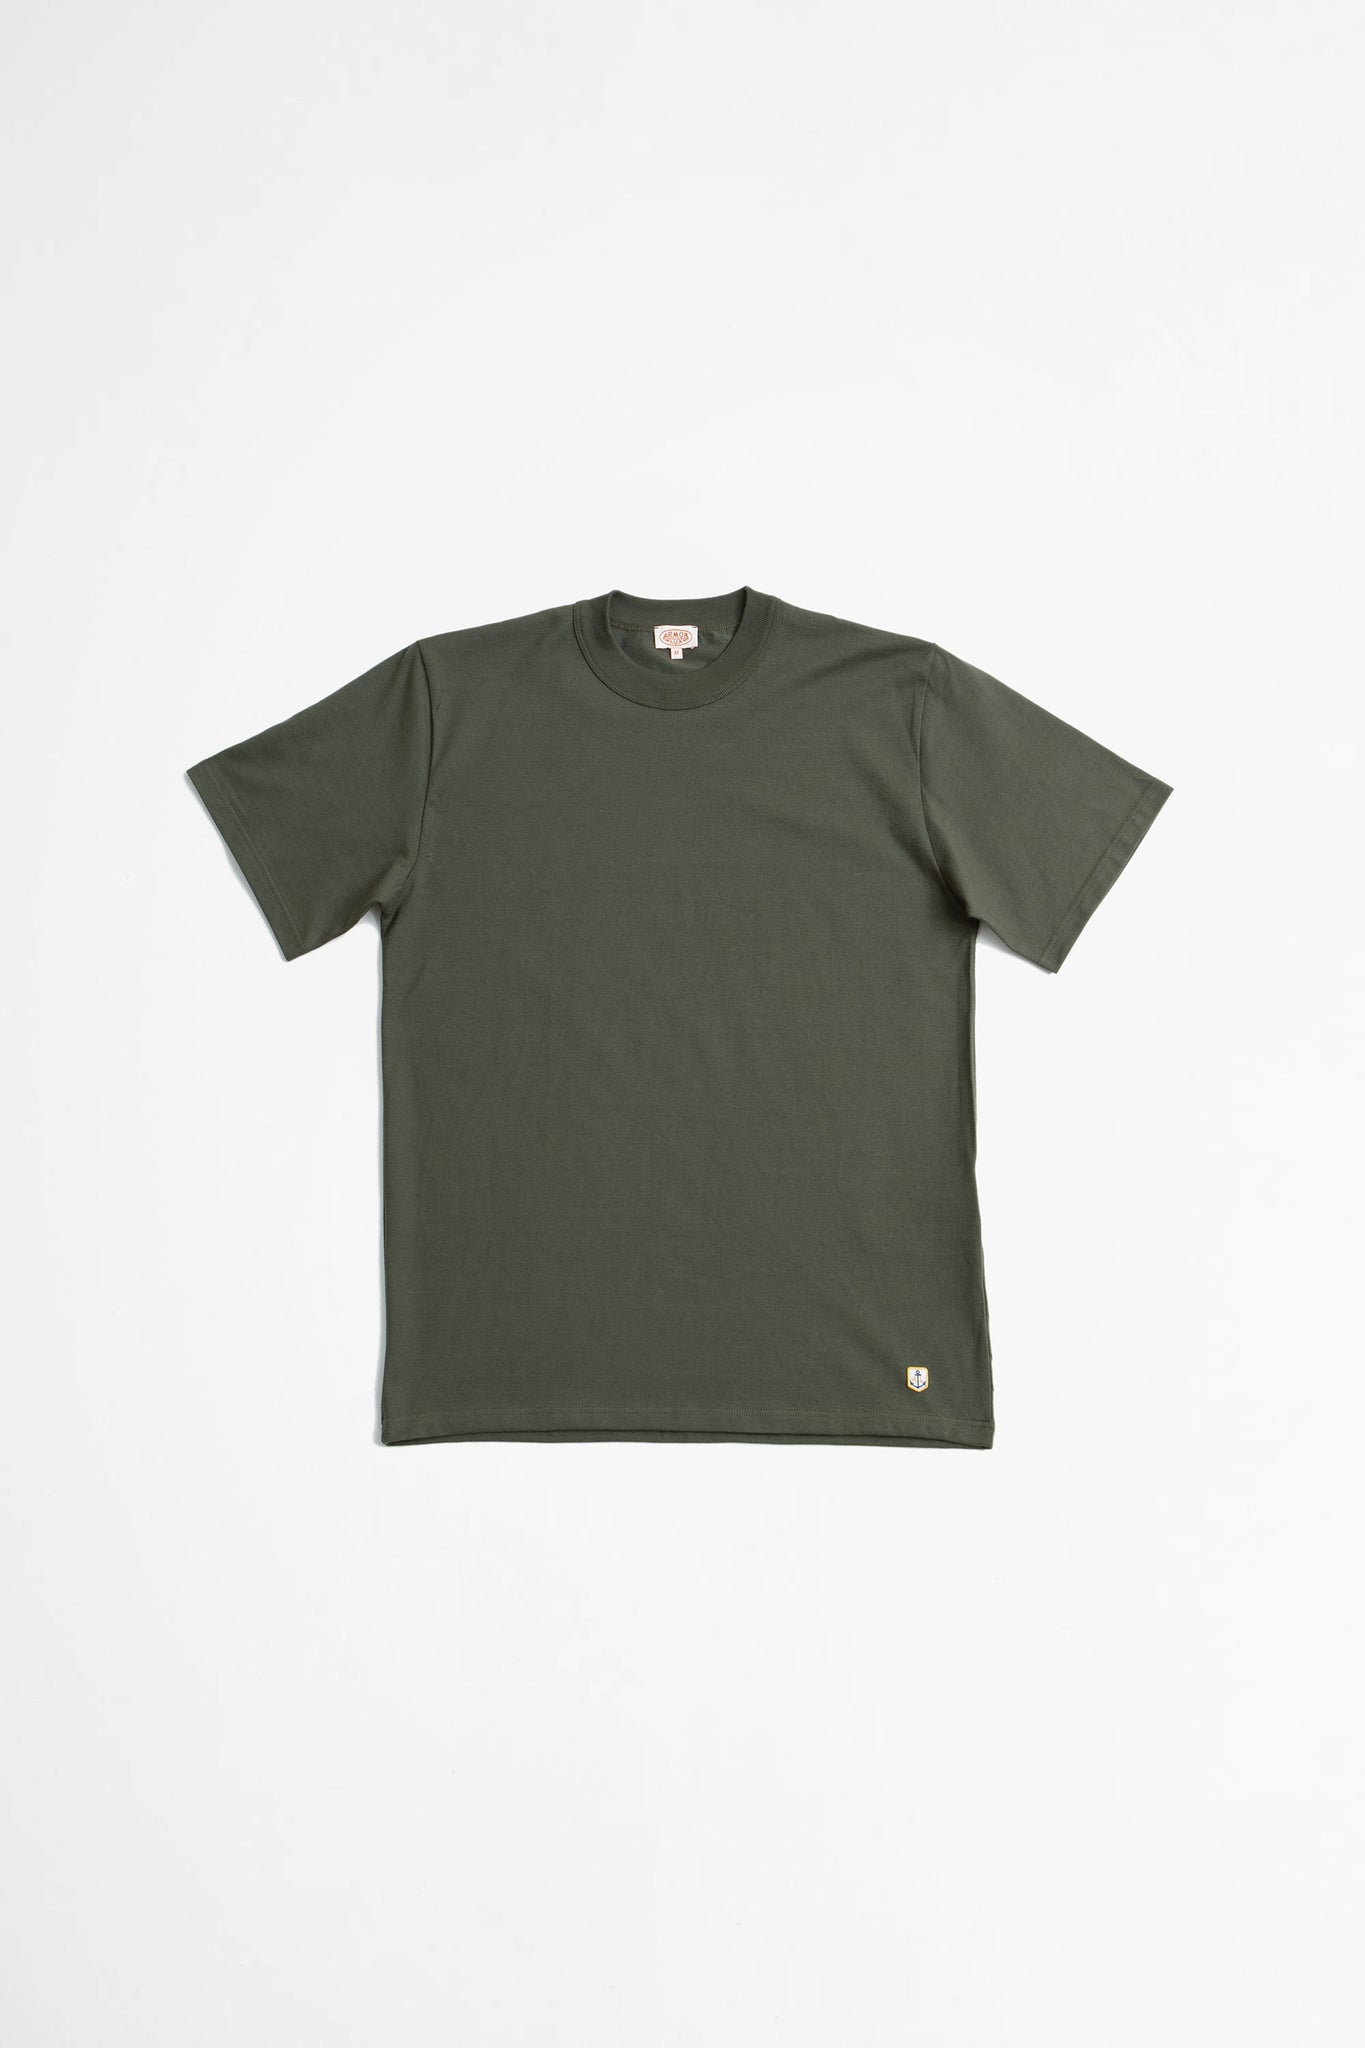 T-shirt Callac epicea dark green